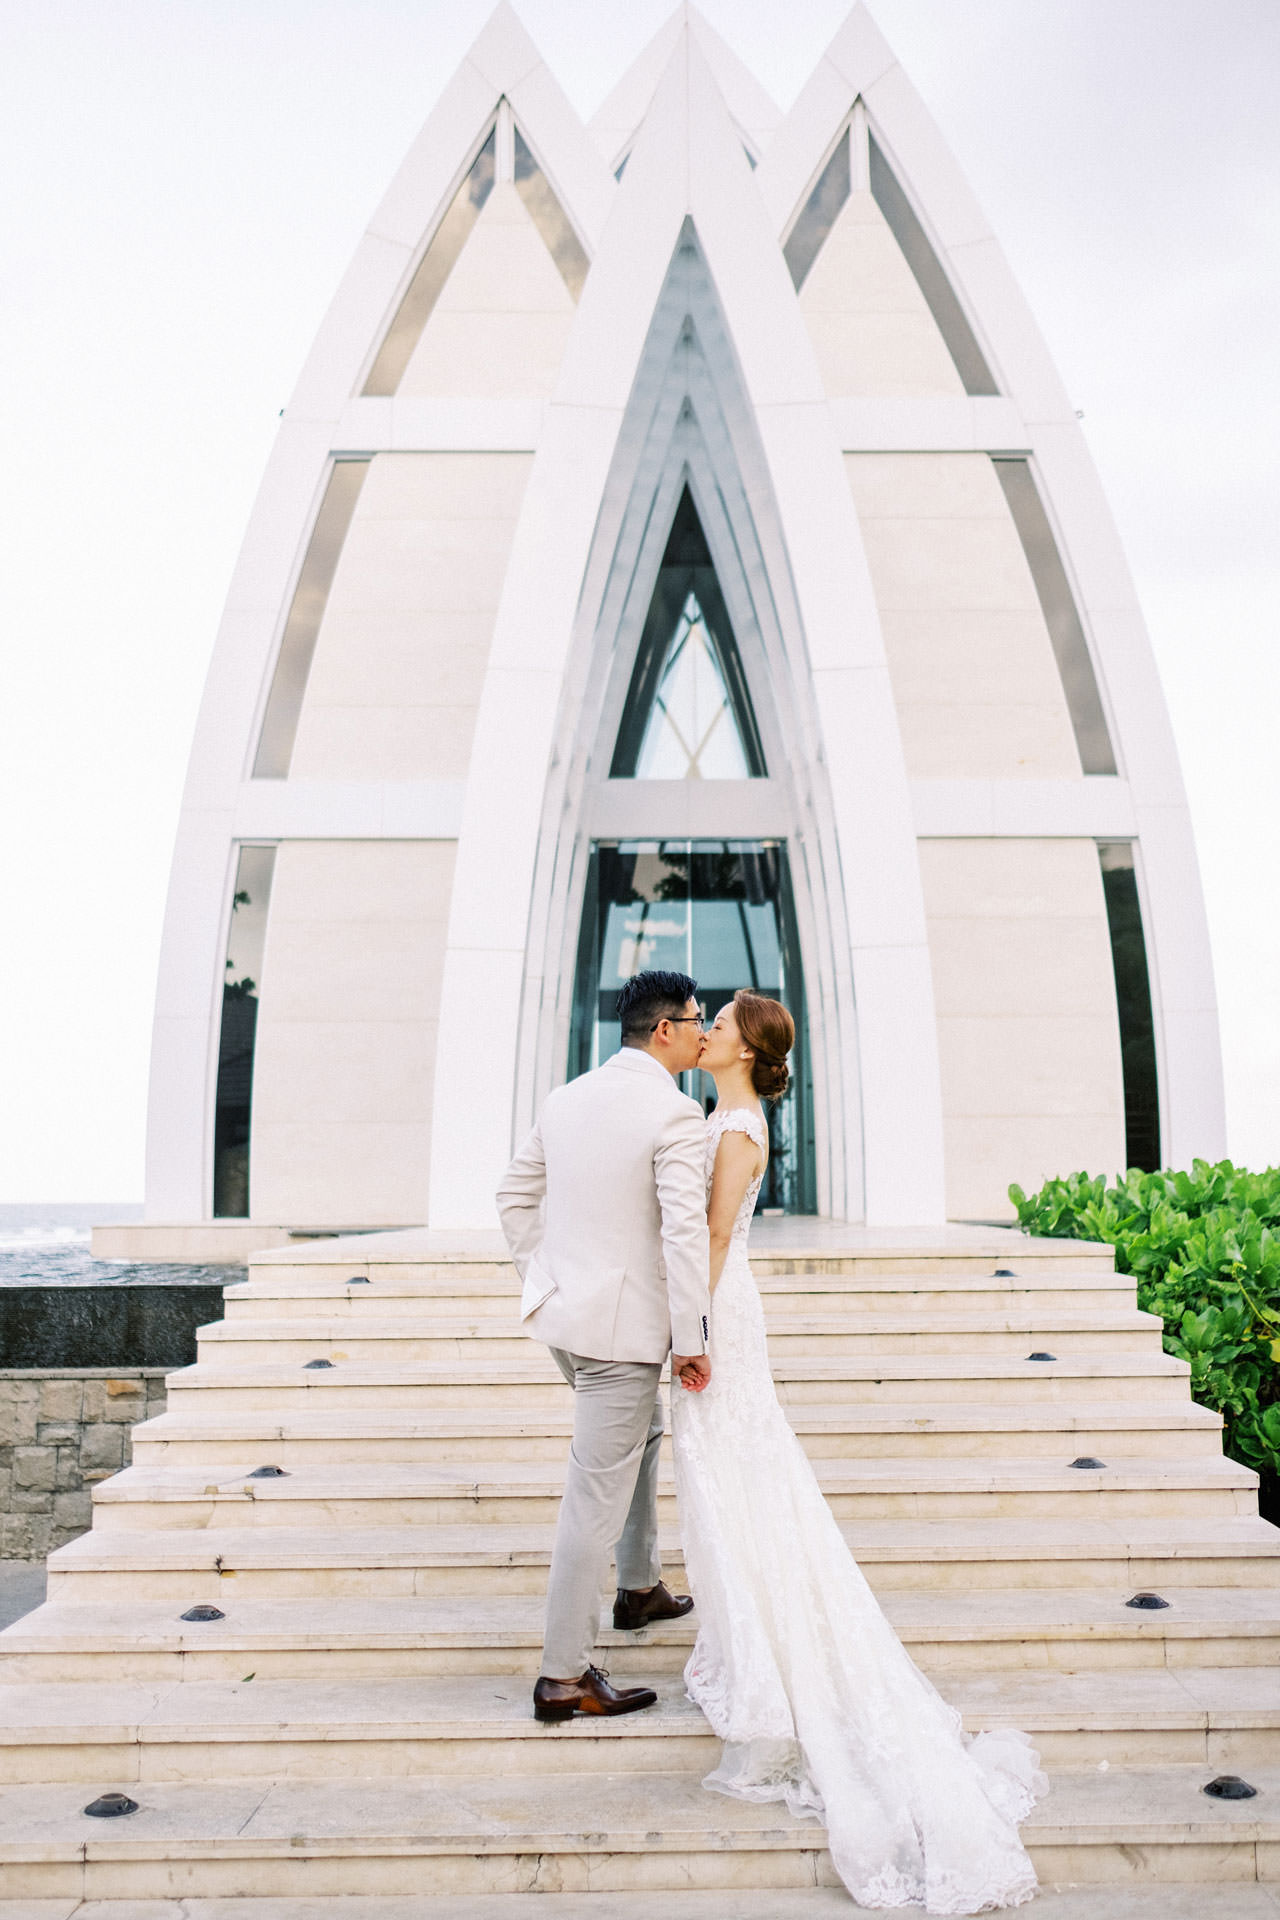 The Ritz Carlton Chapel for Bali Wedding